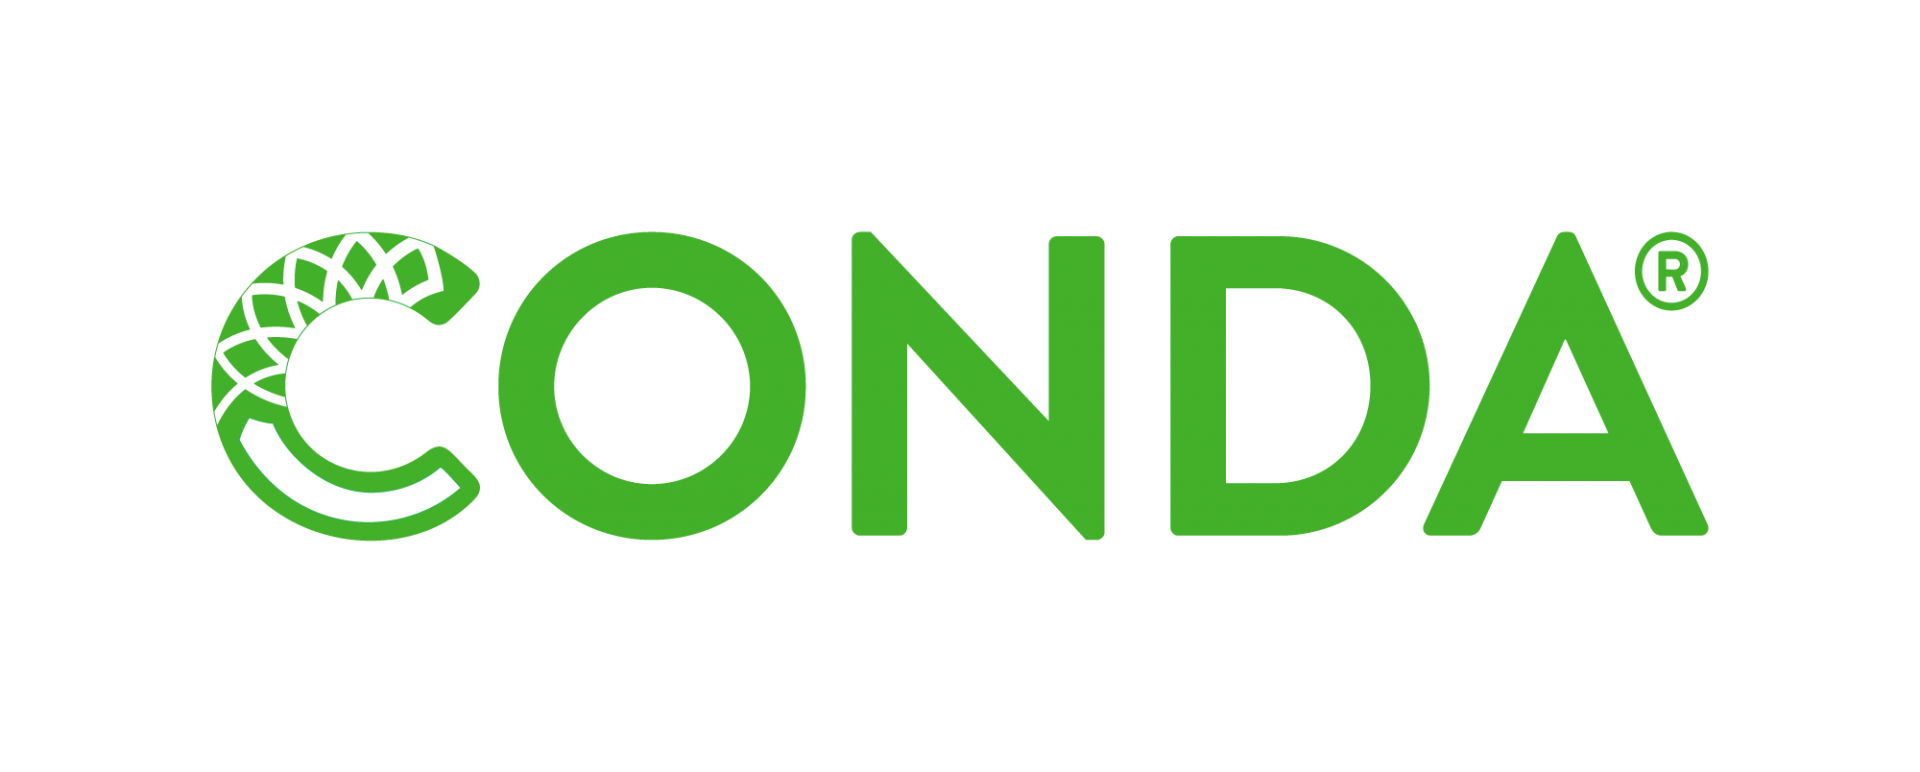 Chasing conda commands - Piyush Deshmukh - Medium